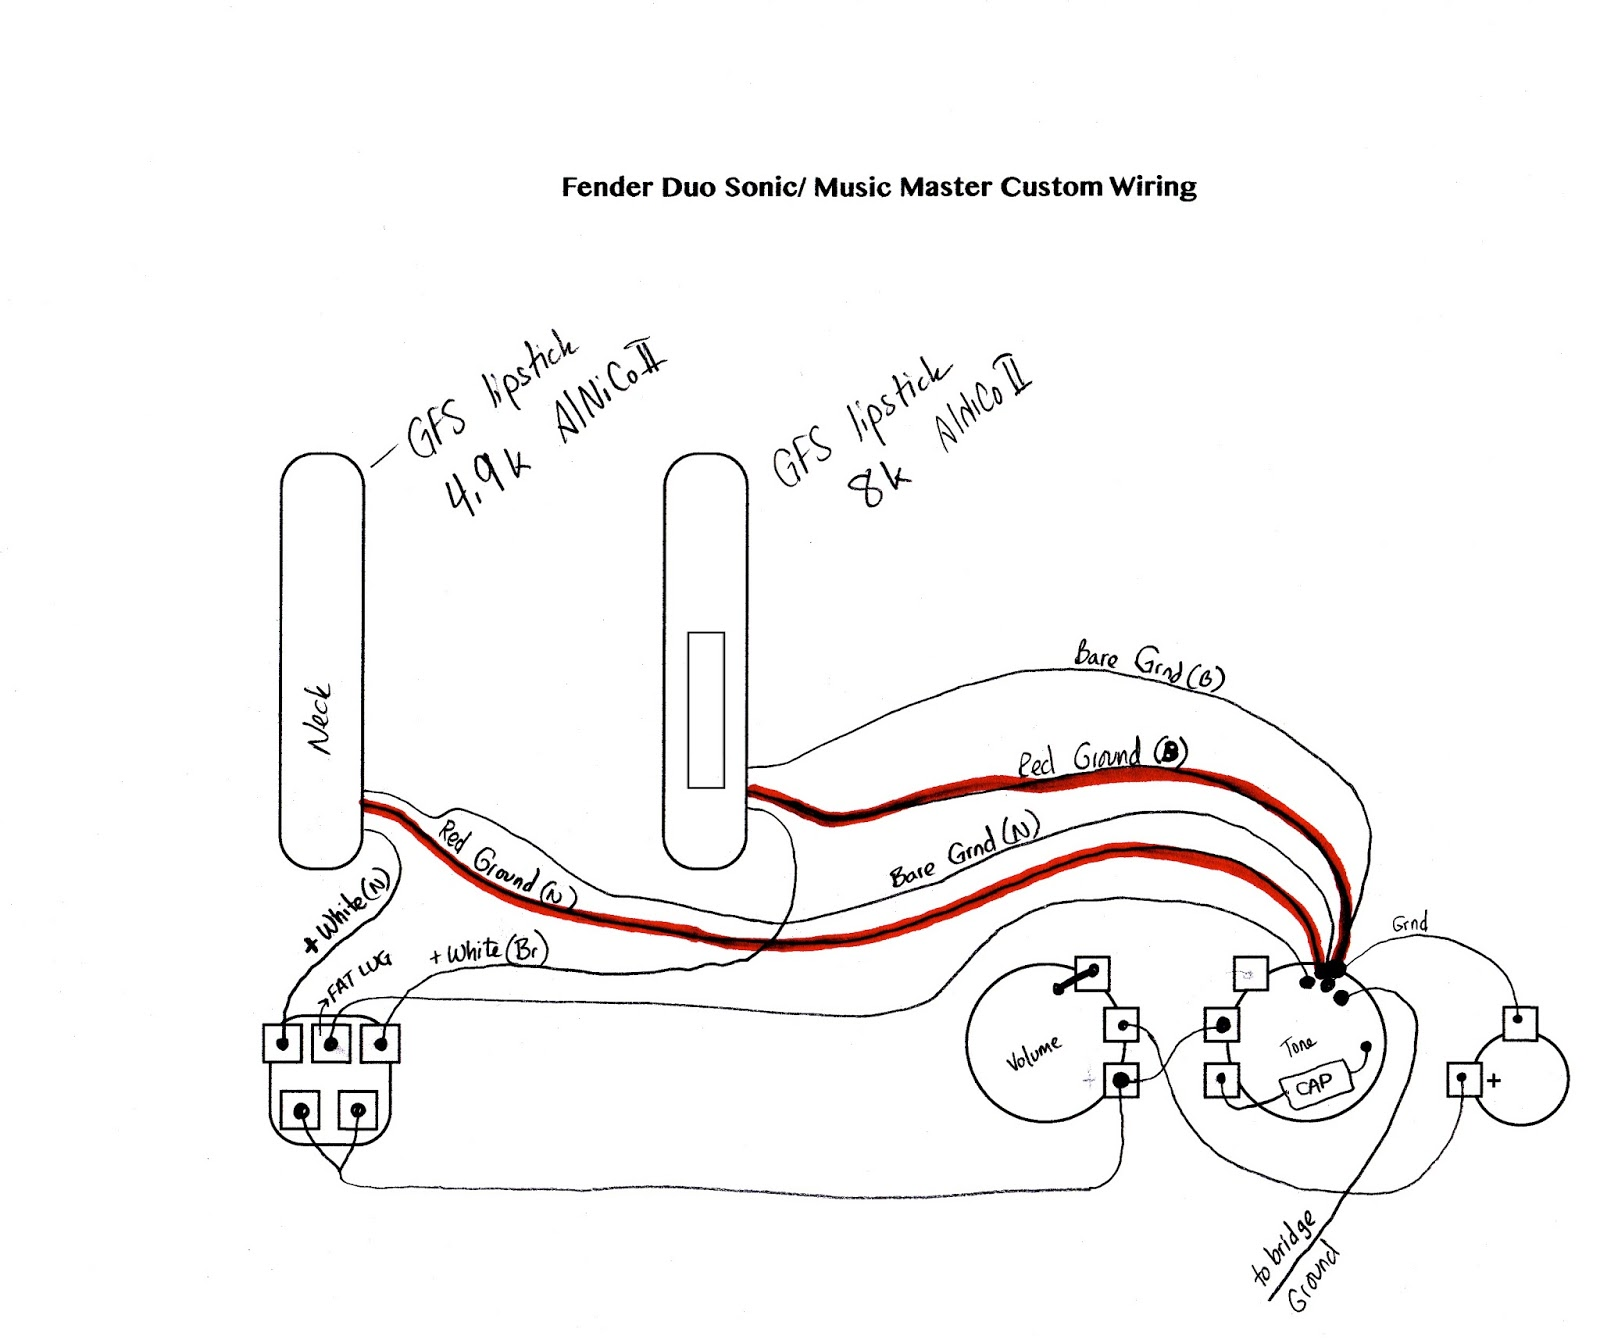 gfs wiring diagram briggs and stratton oil change fat strat library